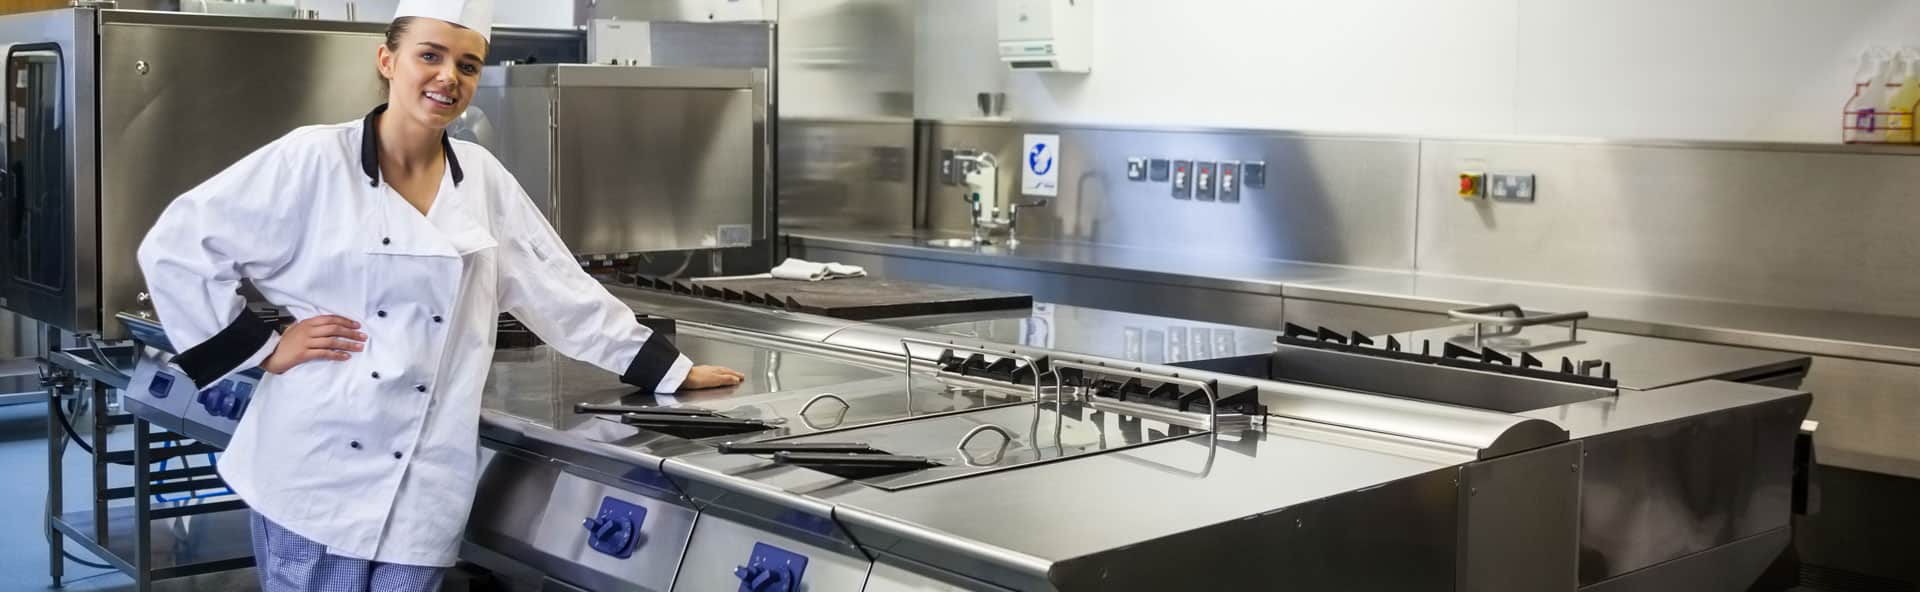 lady in chef uniform standing in a commercial kitchen